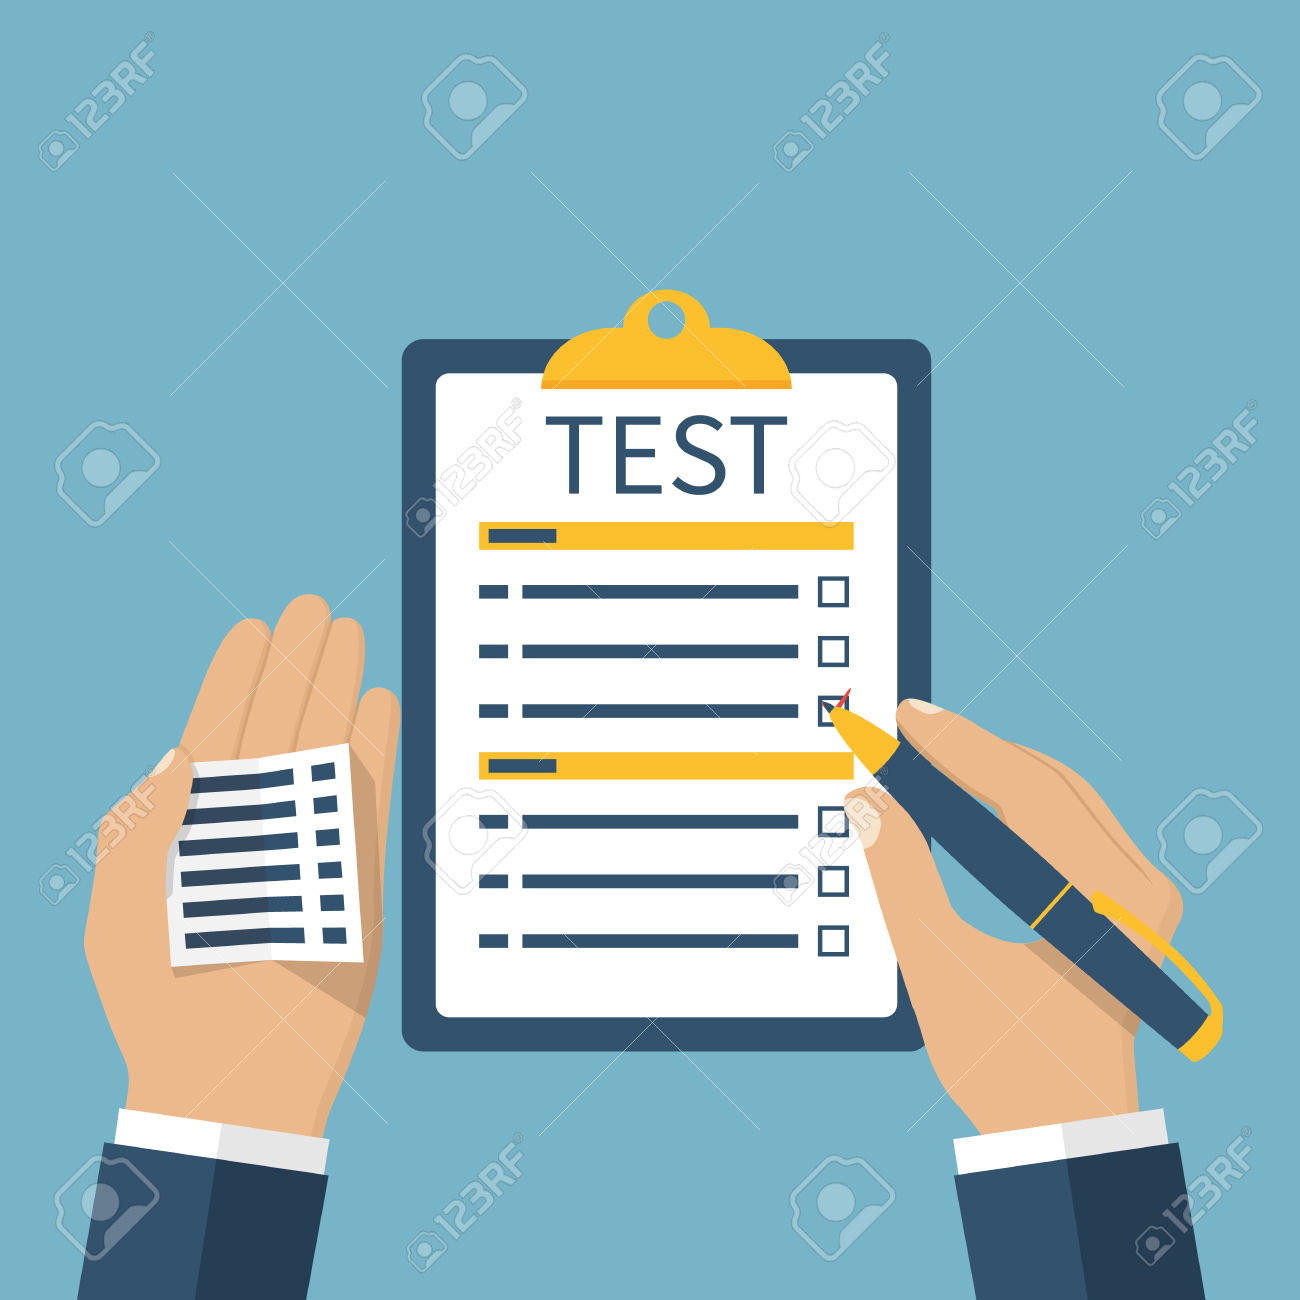 Man On The Exam Is Tested. Cheat Sheet In Hand, Cheating On The ... clipart freeuse